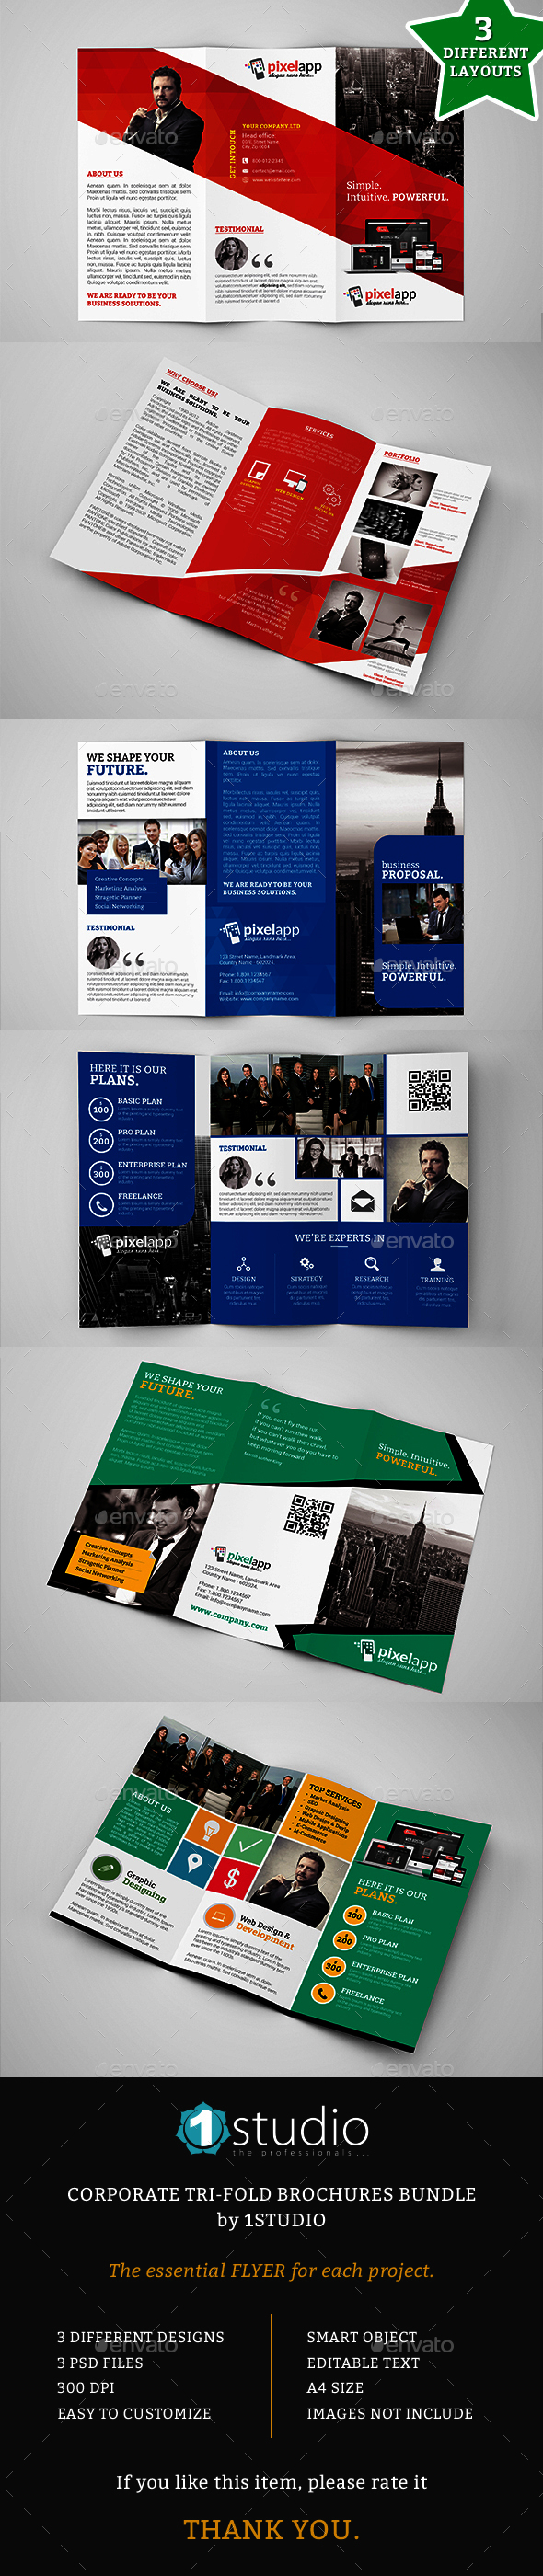 Corporate Trifold Brochures Bundle - 3 in 1 - Corporate Brochures